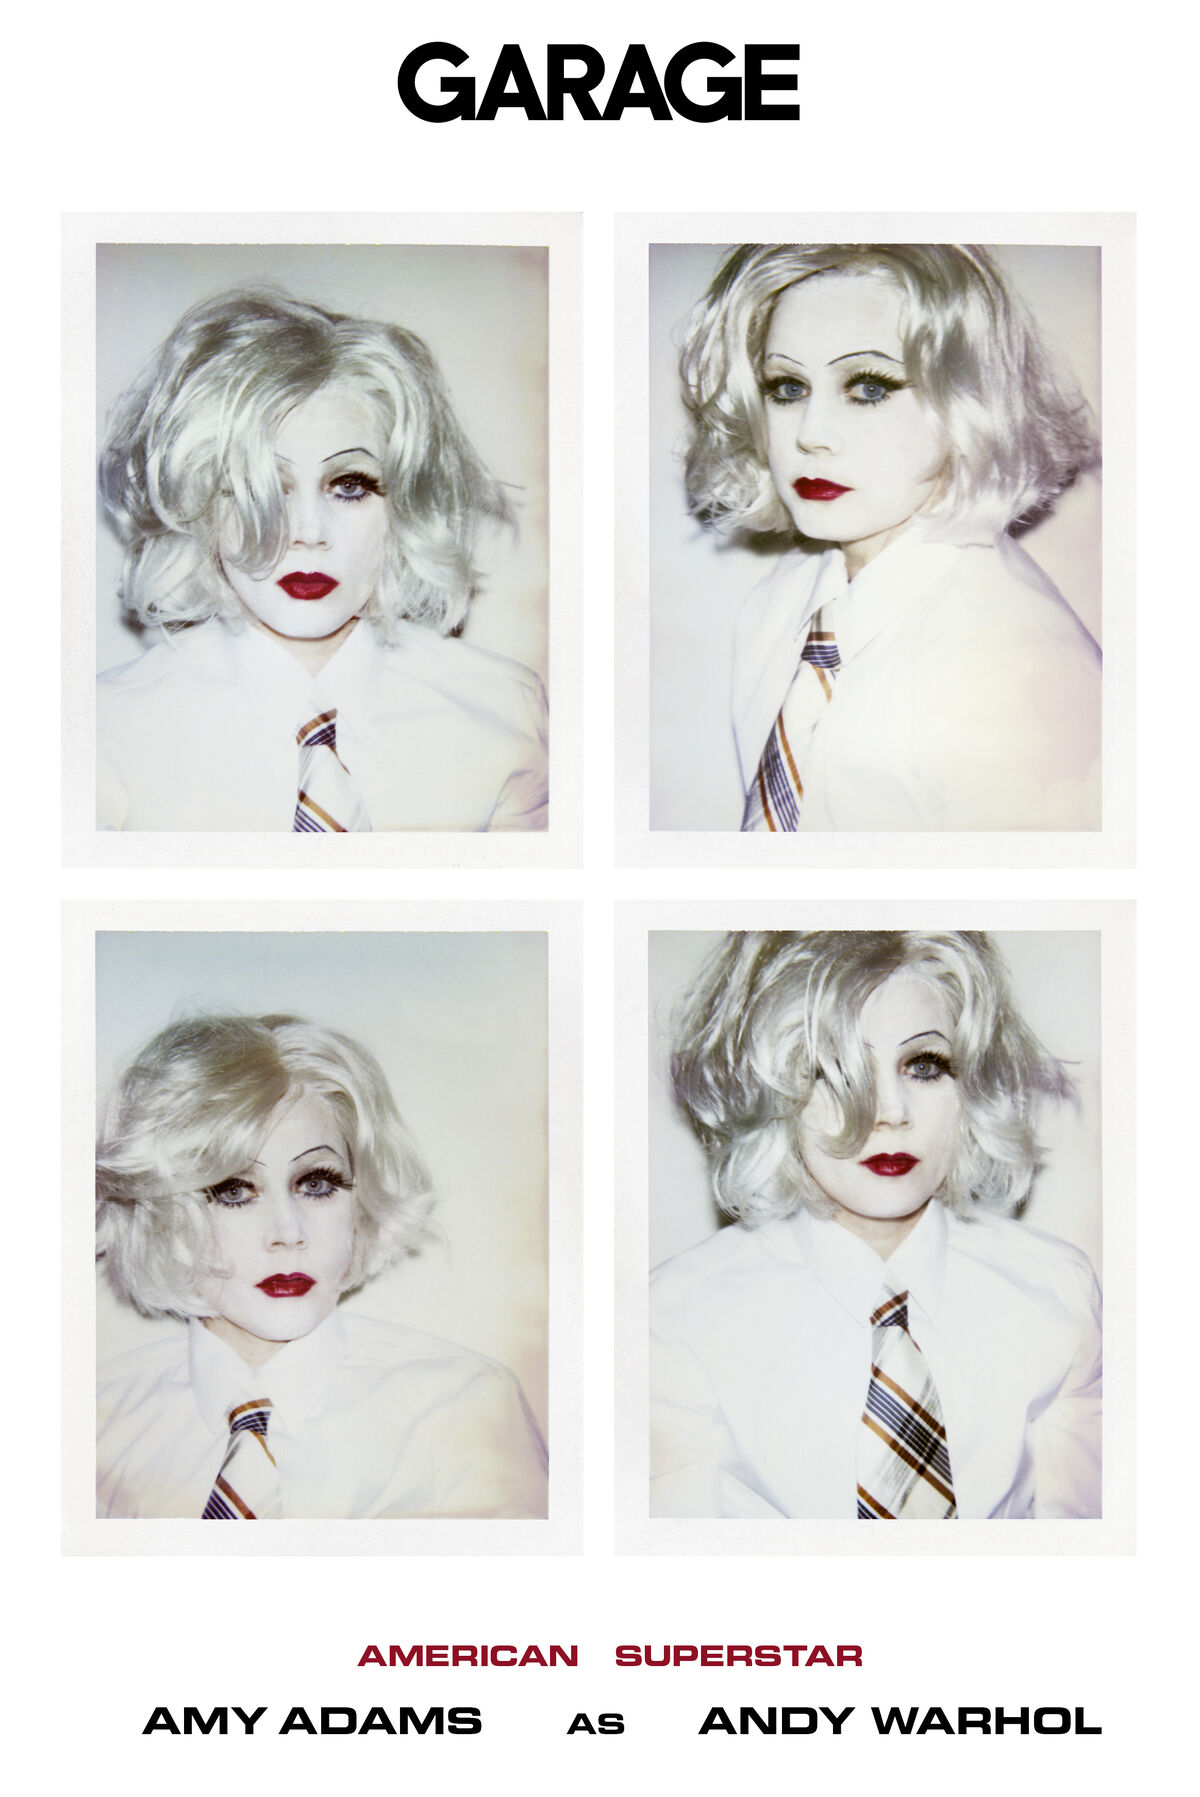 Cover of GARAGE Magazine No. 14 (S/S18) starring Amy Adams as Andy Warhol in his famous Self-Portrait in Drag. Photography by Inez & Vinoodh.